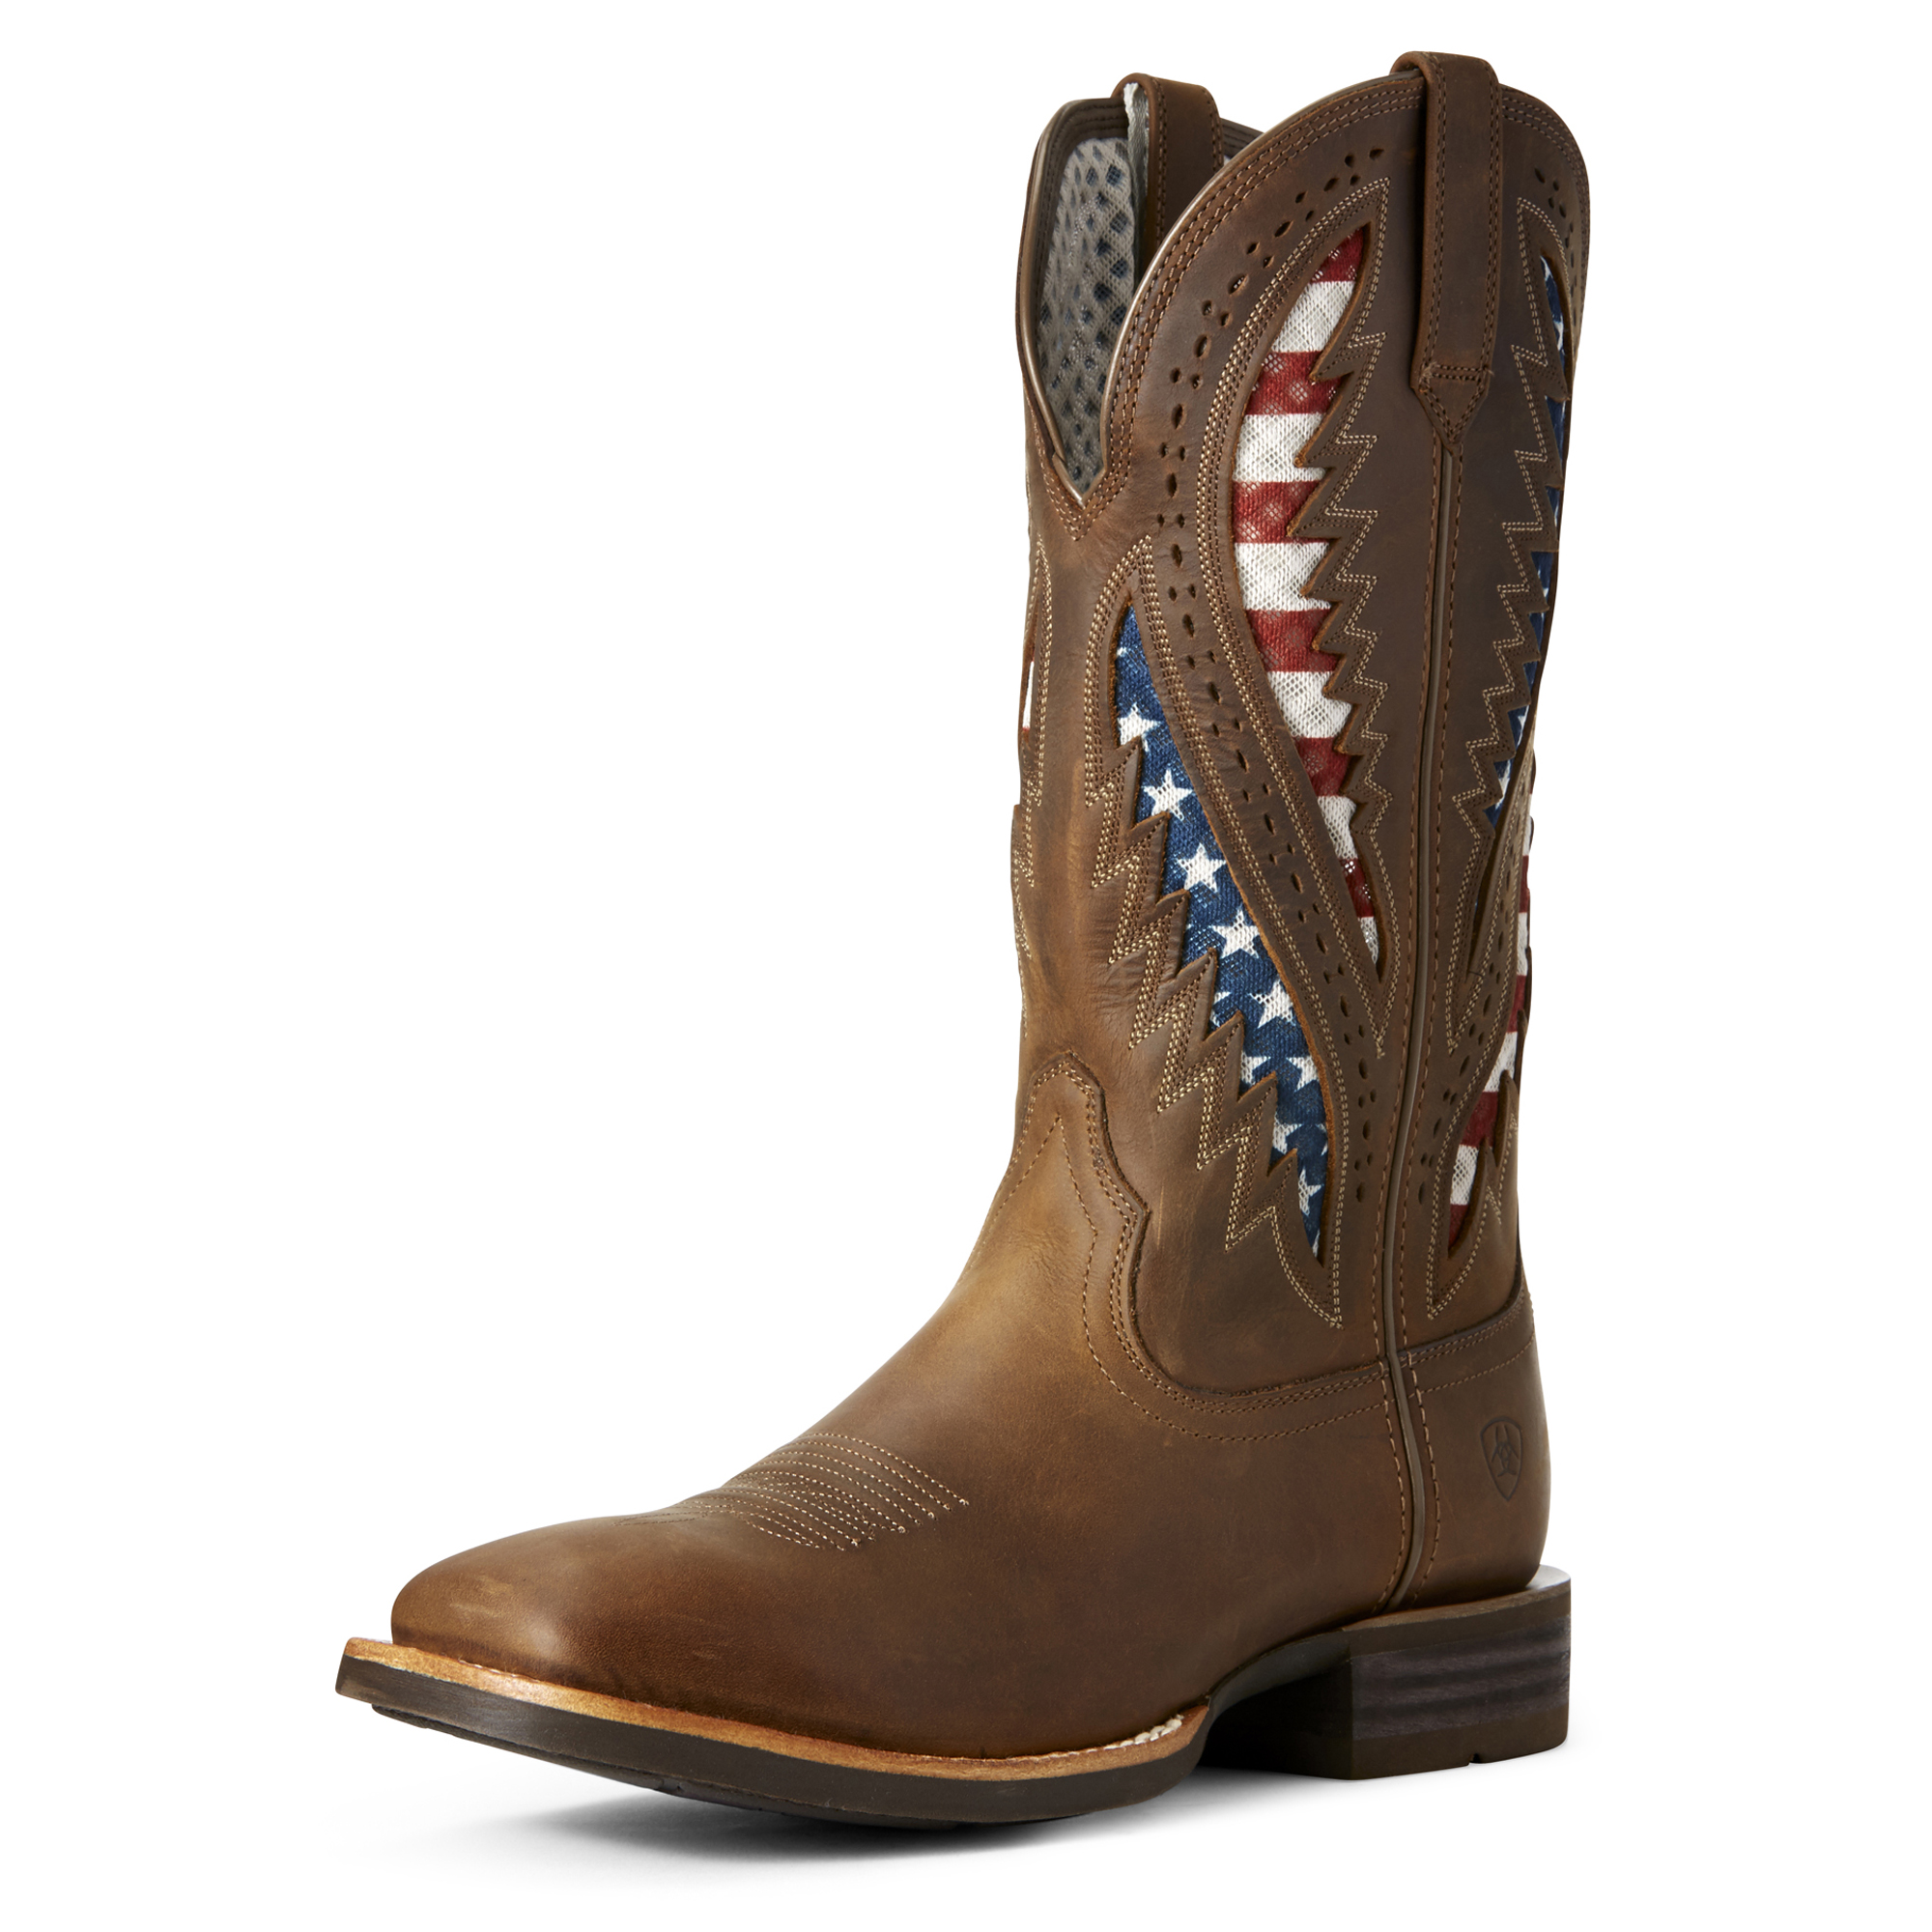 Ariat 10027165 Quickdraw Venttek